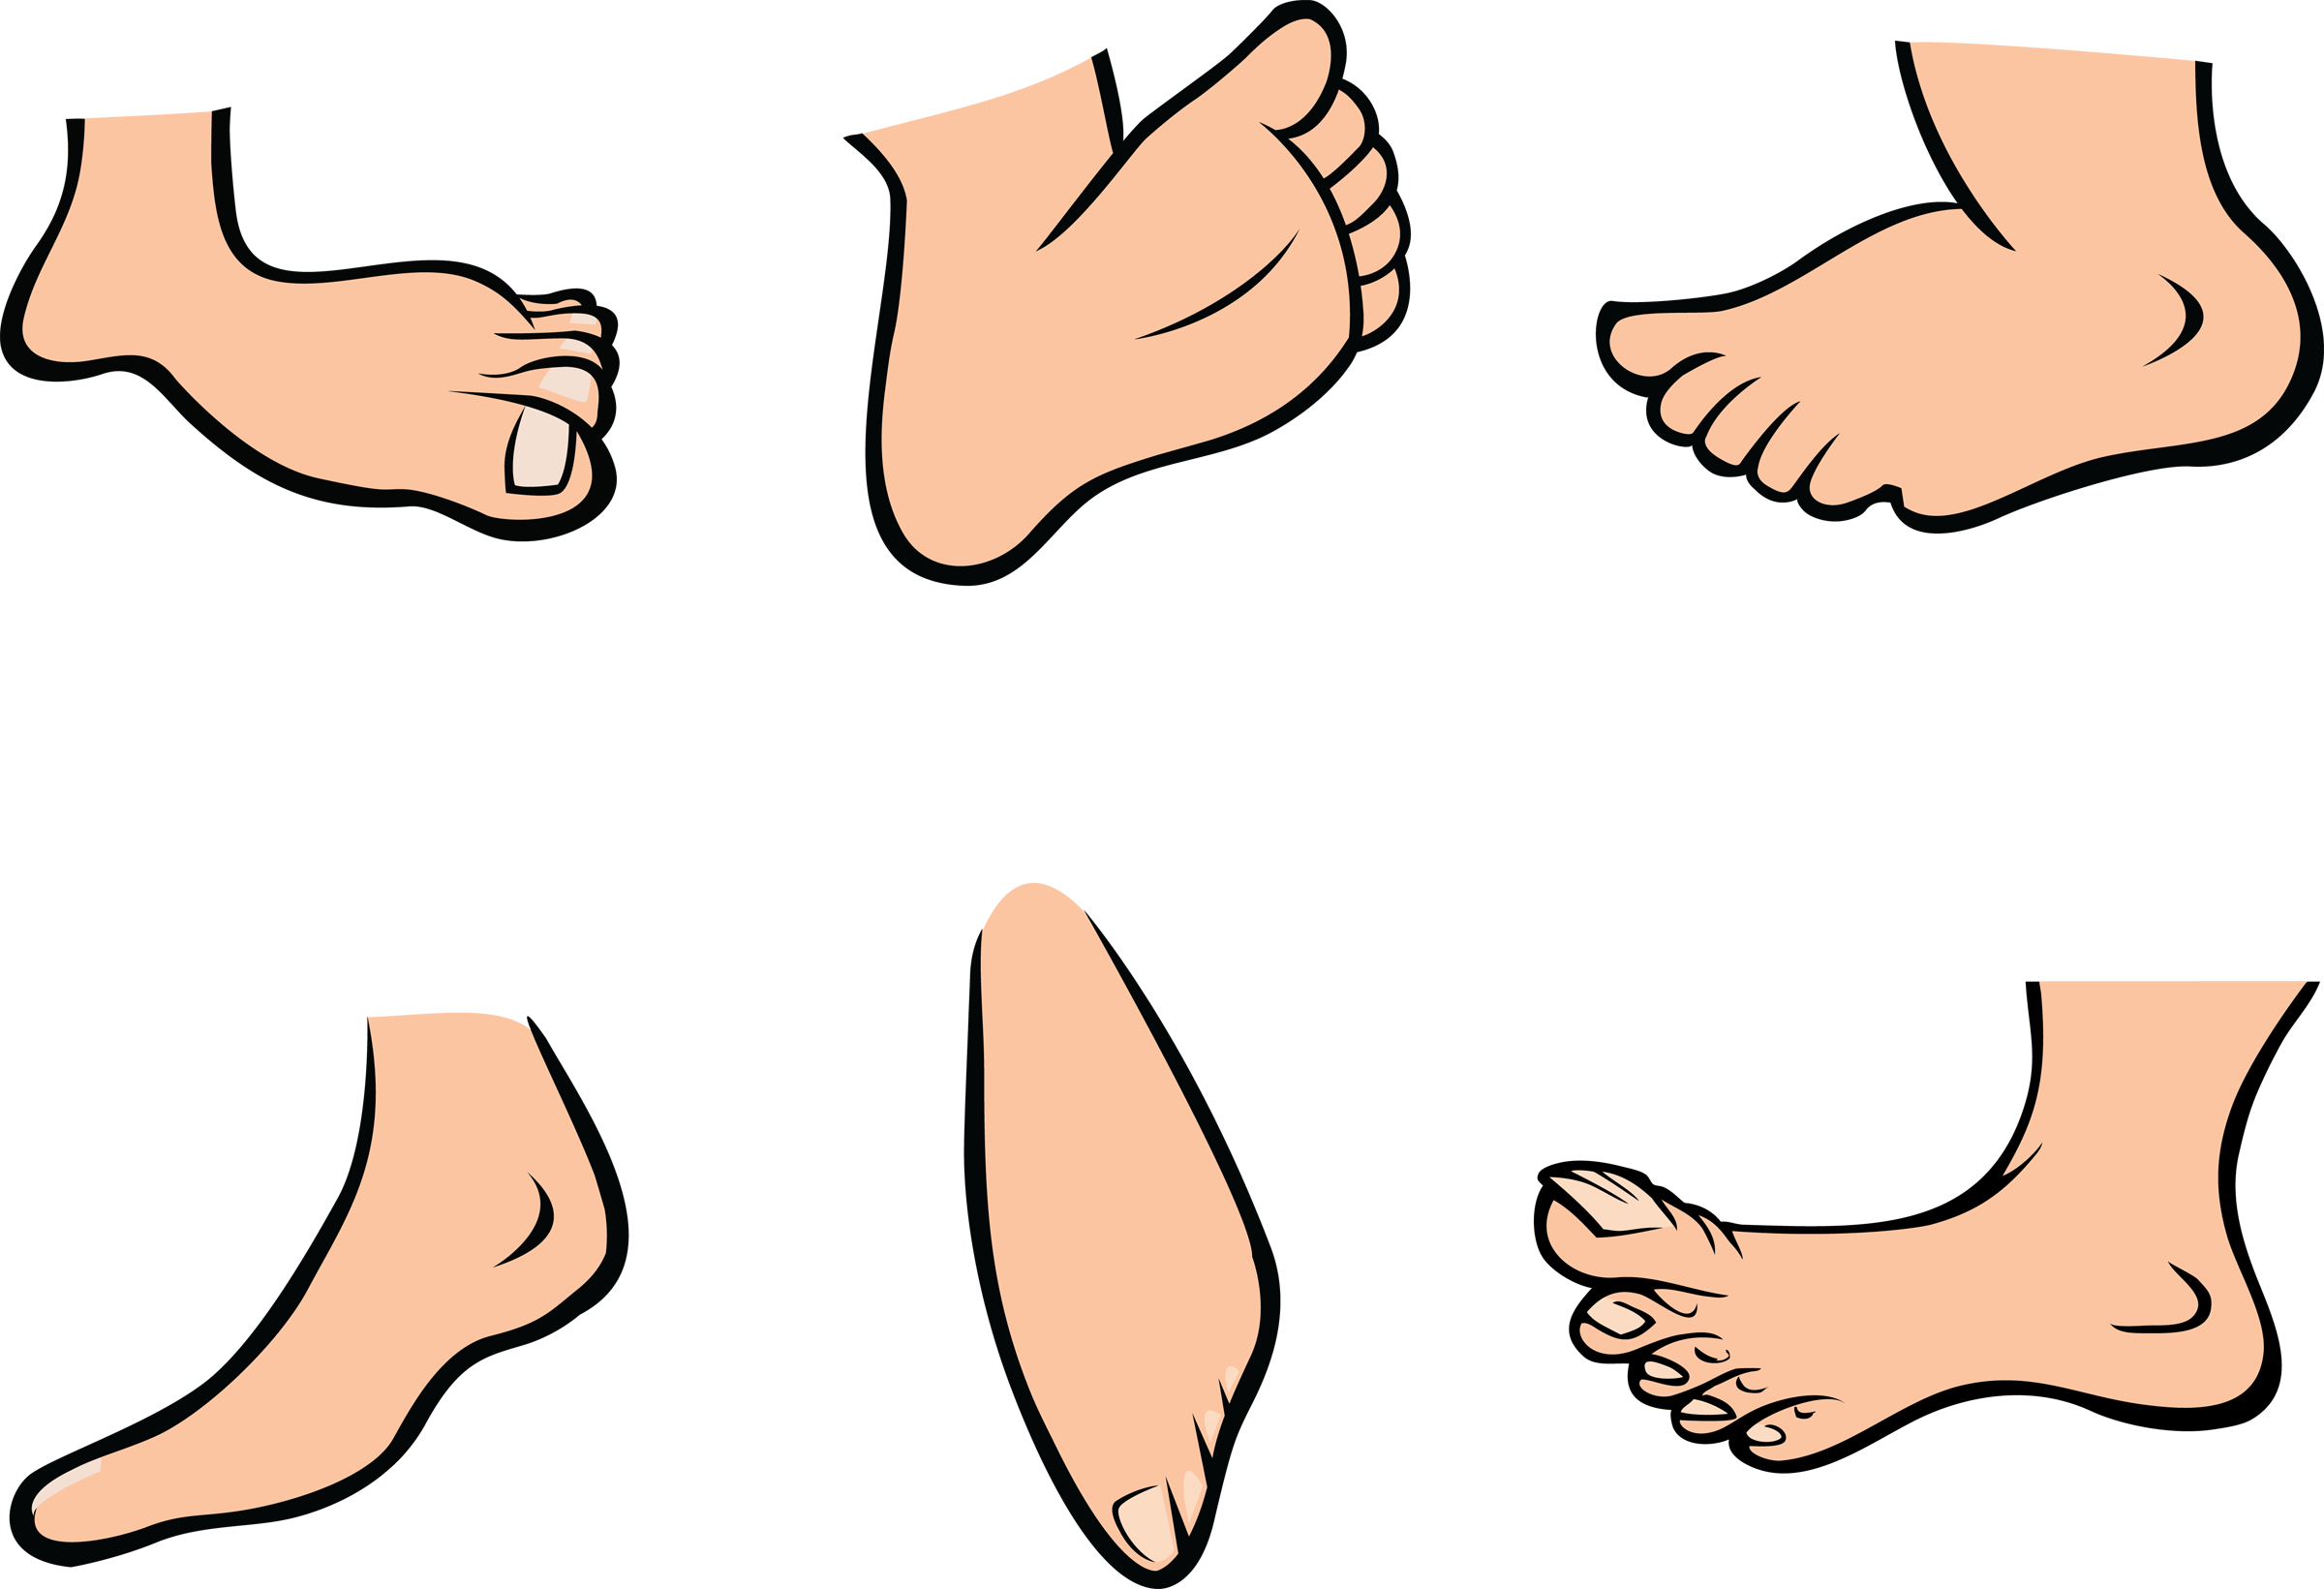 Pictures Of Cartoon Feet.